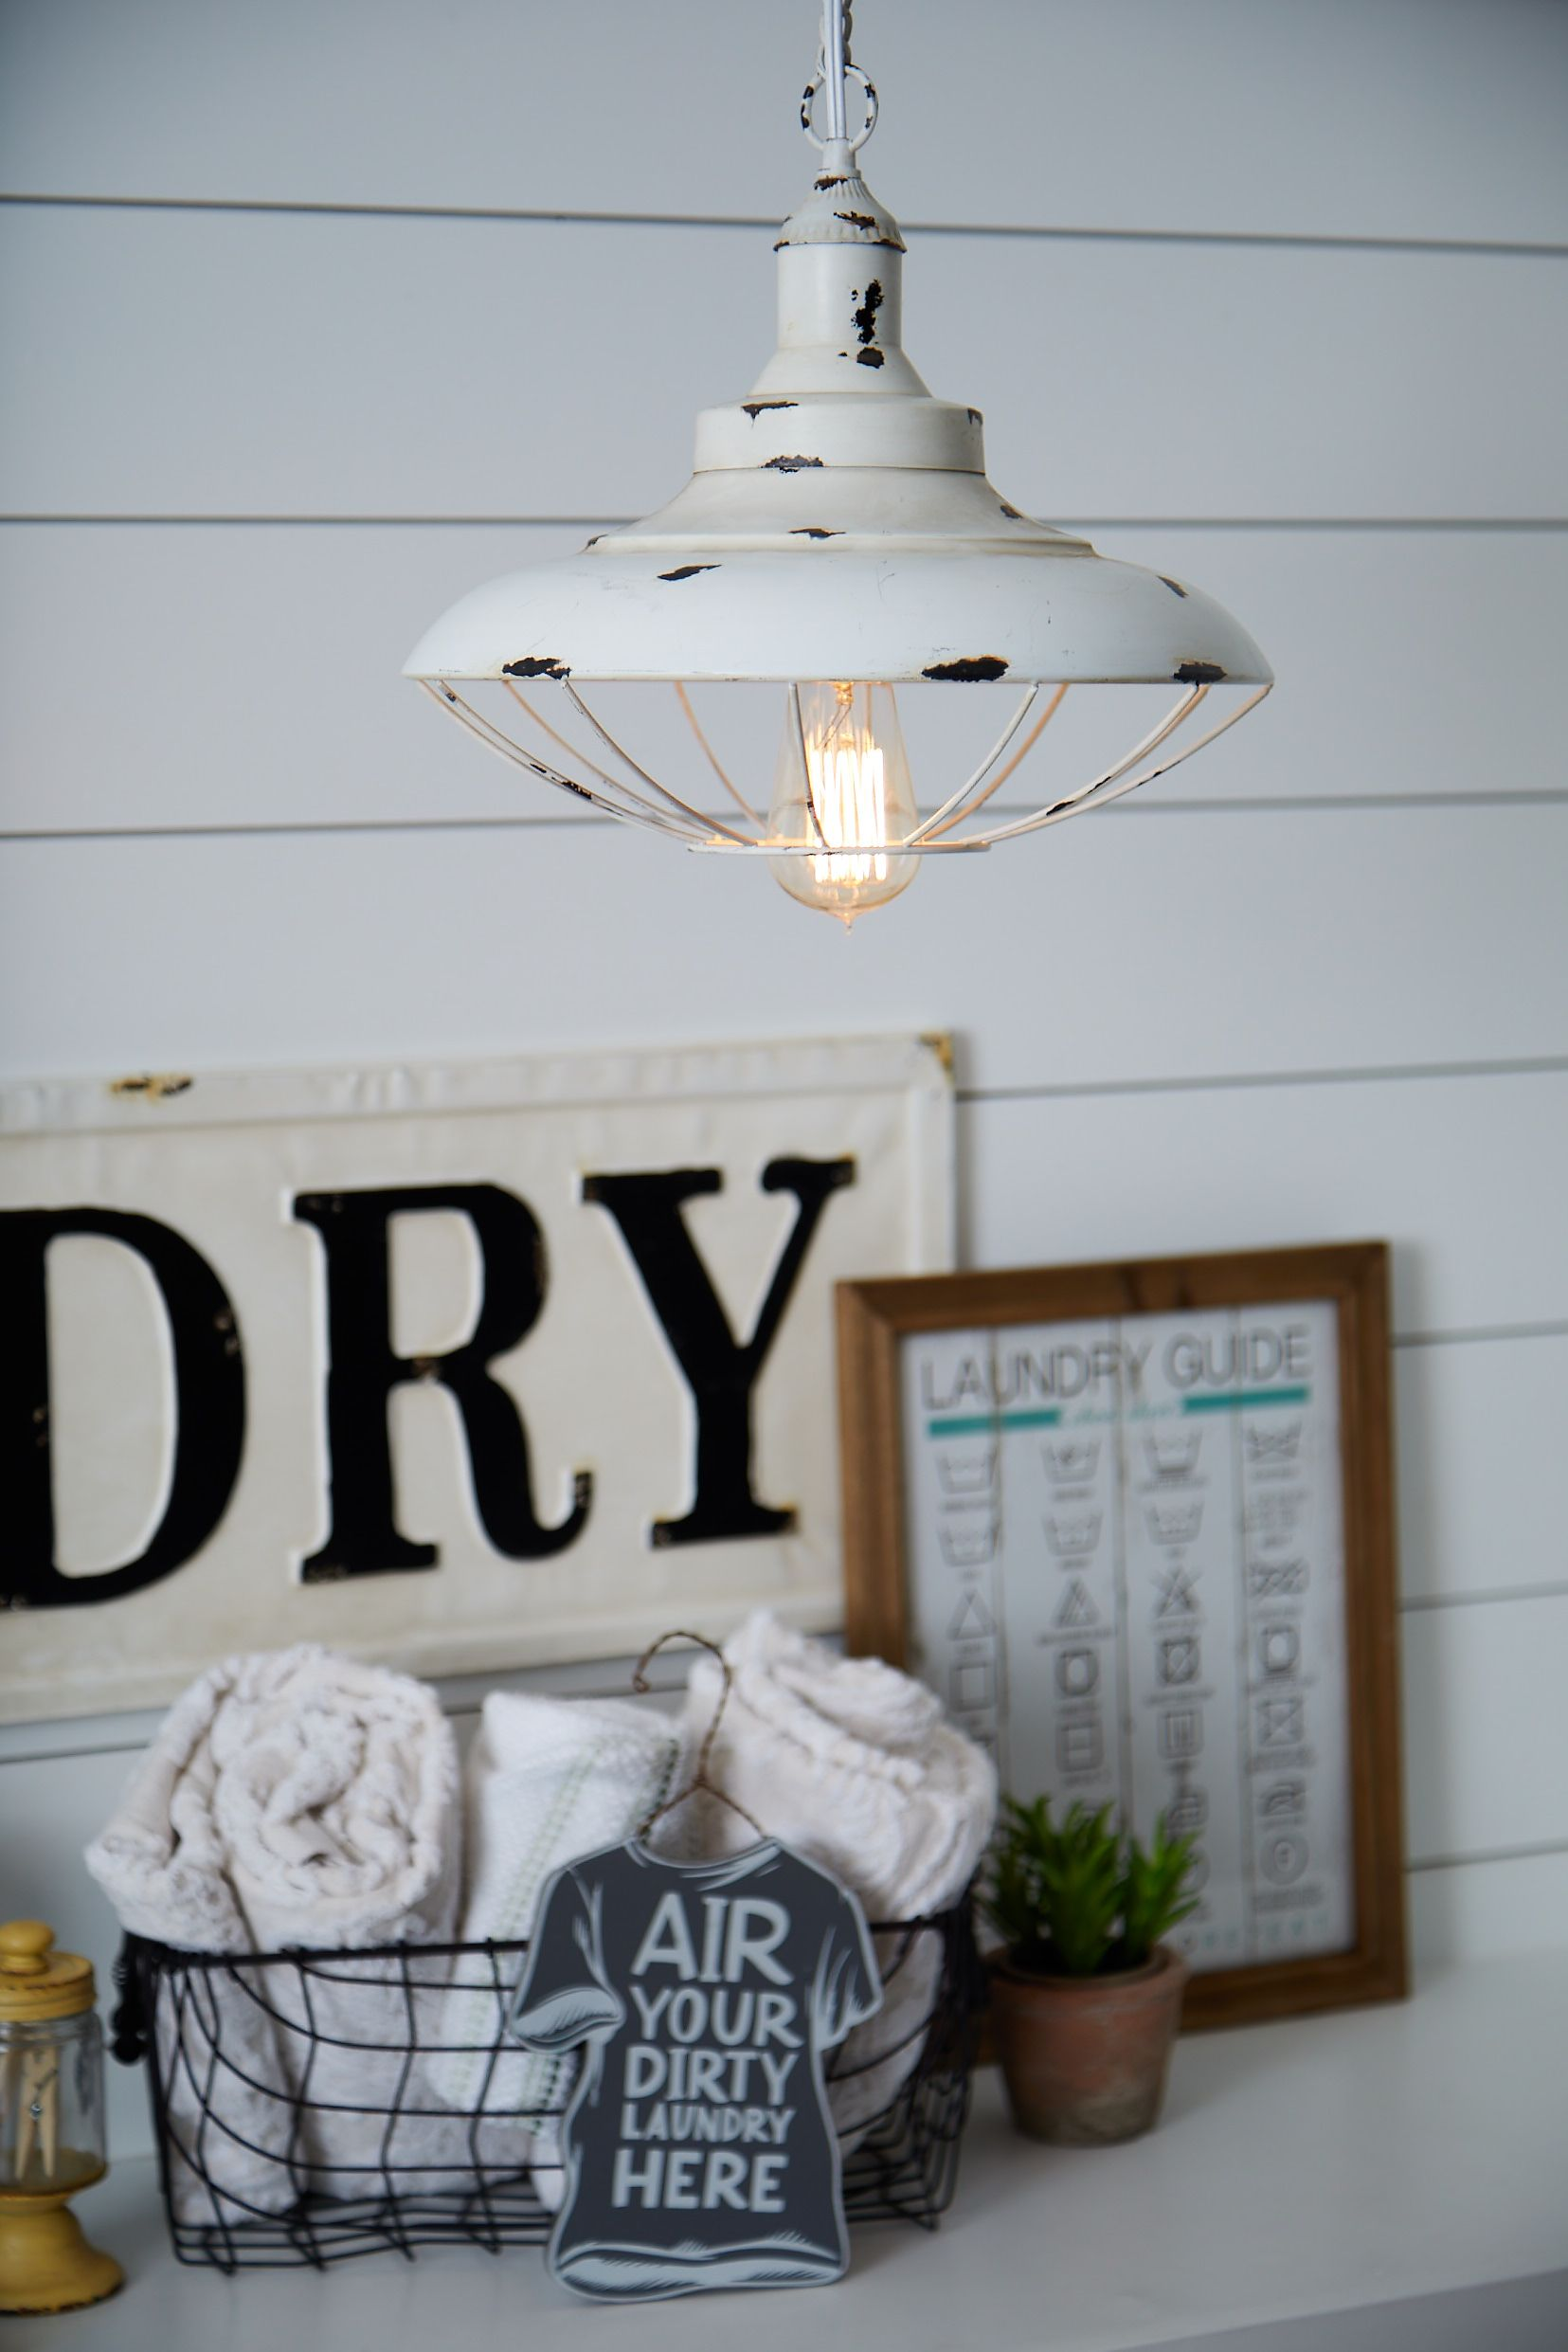 Industrial Meets Classic Vintage Style In This White Metal Pendant